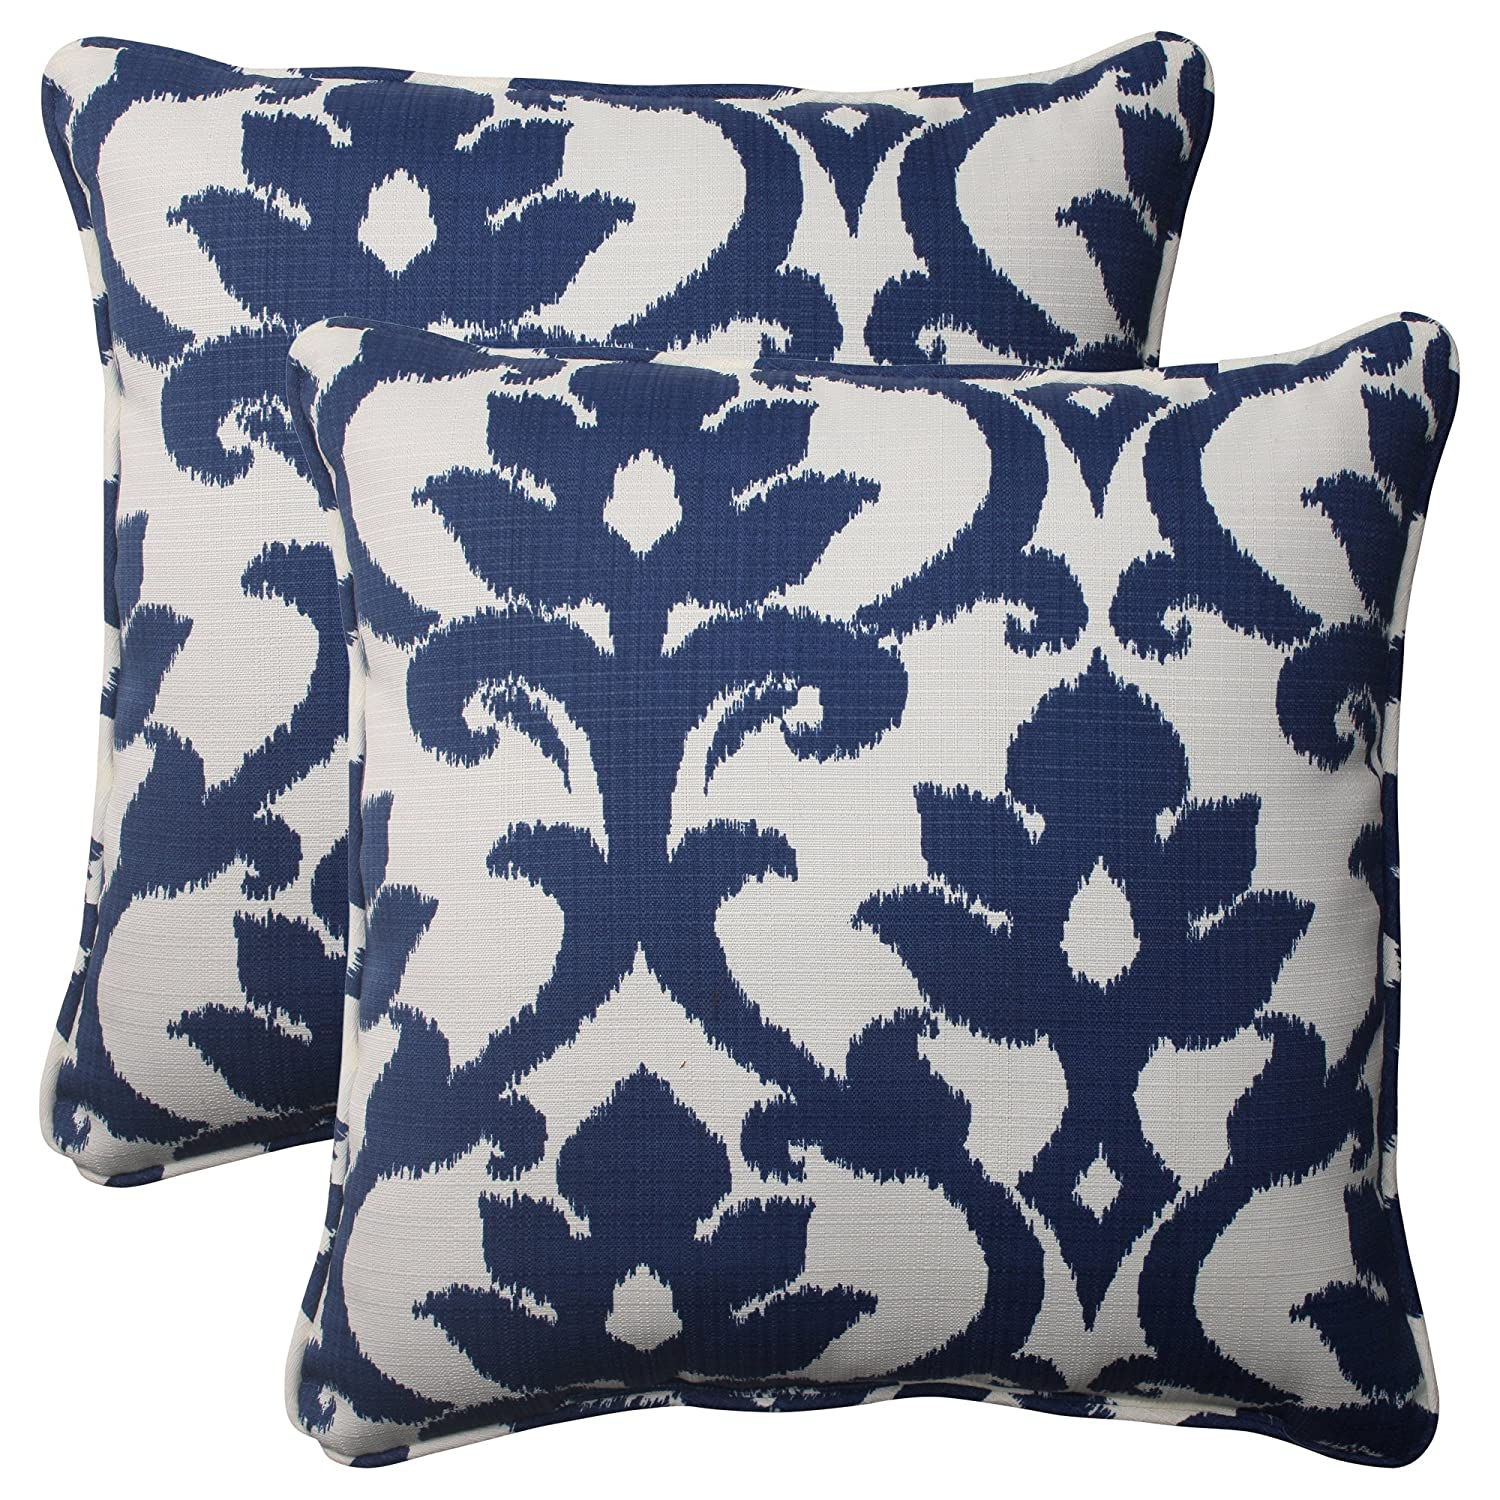 navy zoom accent blue listing pillow pillowdiy pillowblue fullxfull pillowstudded il pillows velvet